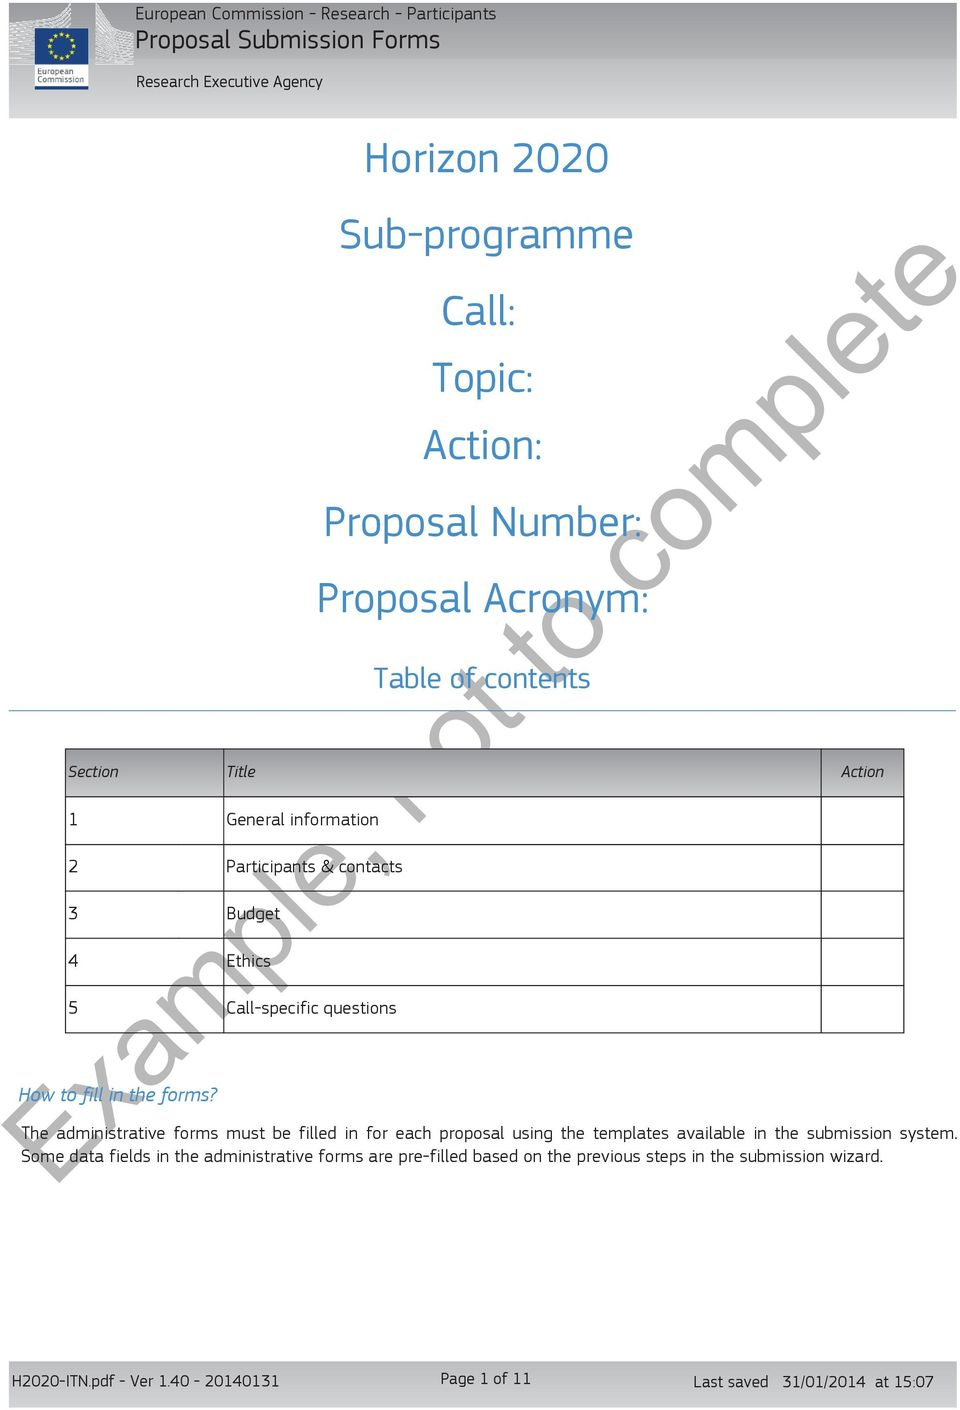 Horizon 00 Sub-programme Call: Topic: Action: Proposal Number: Proposal Acronym: Example, not to complete The administrative forms must be filled in for each